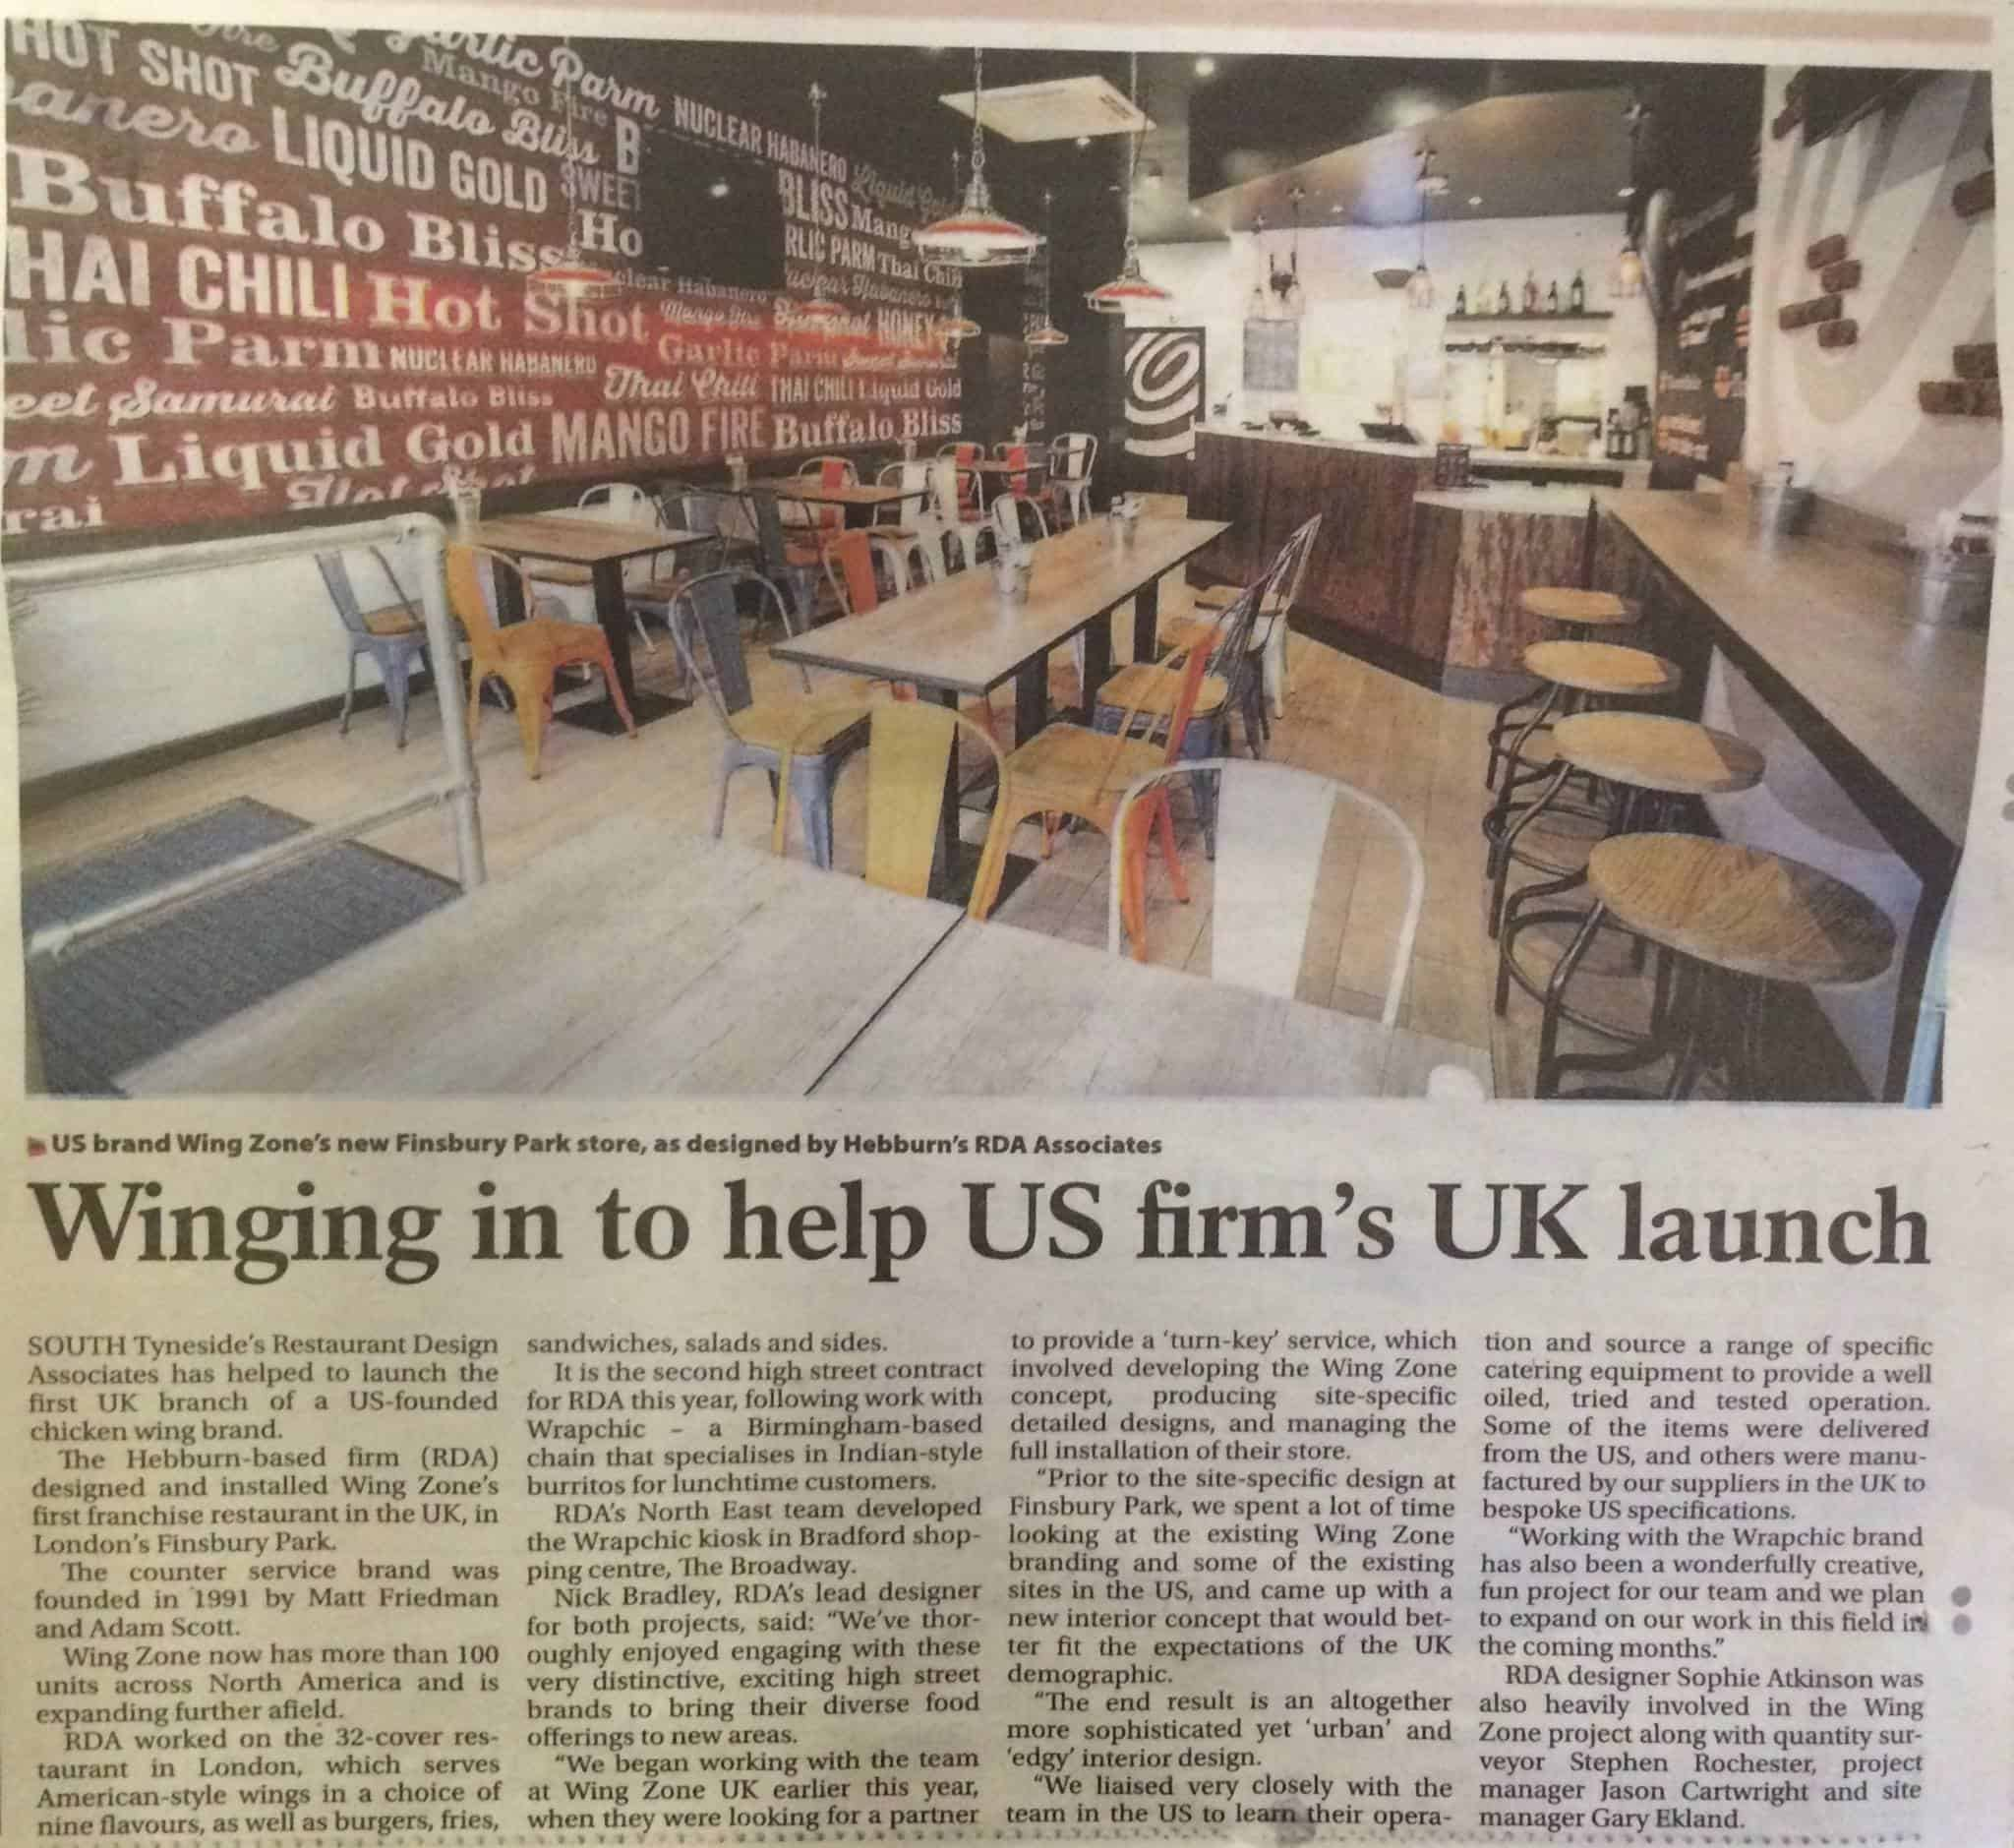 Winging in to help US firm's UK launch